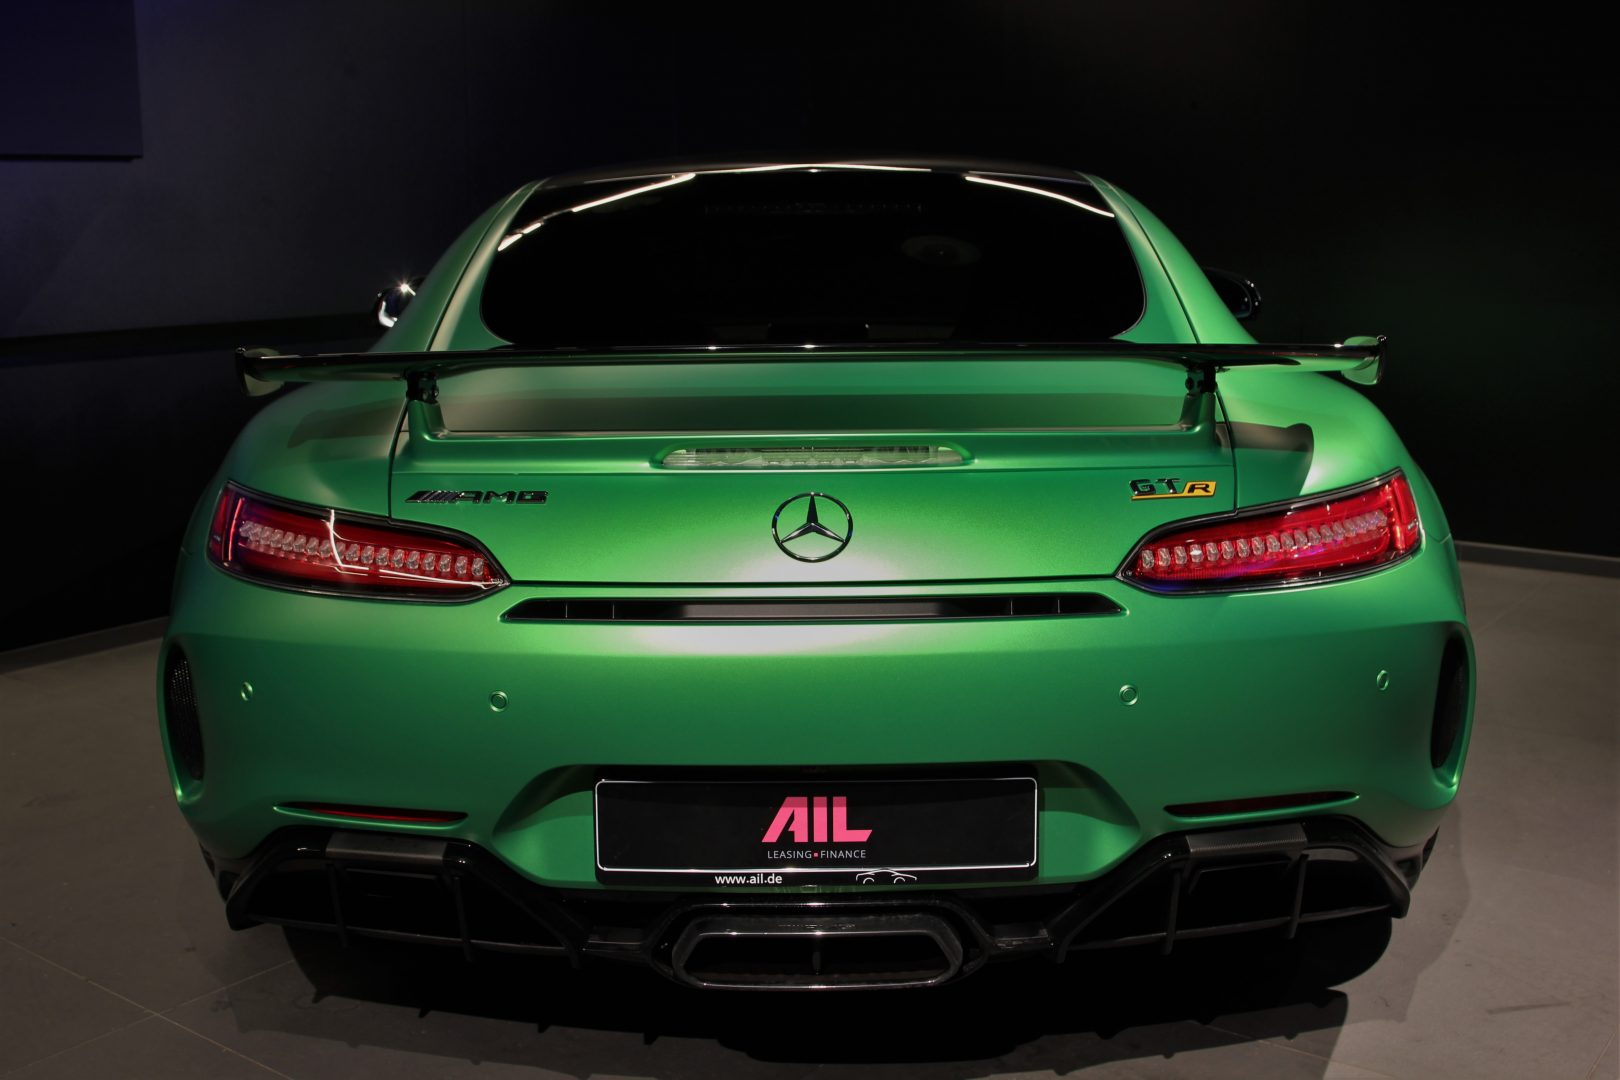 AIL Mercedes-Benz AMG GT R Coupe Performance Carbon Burmester  13